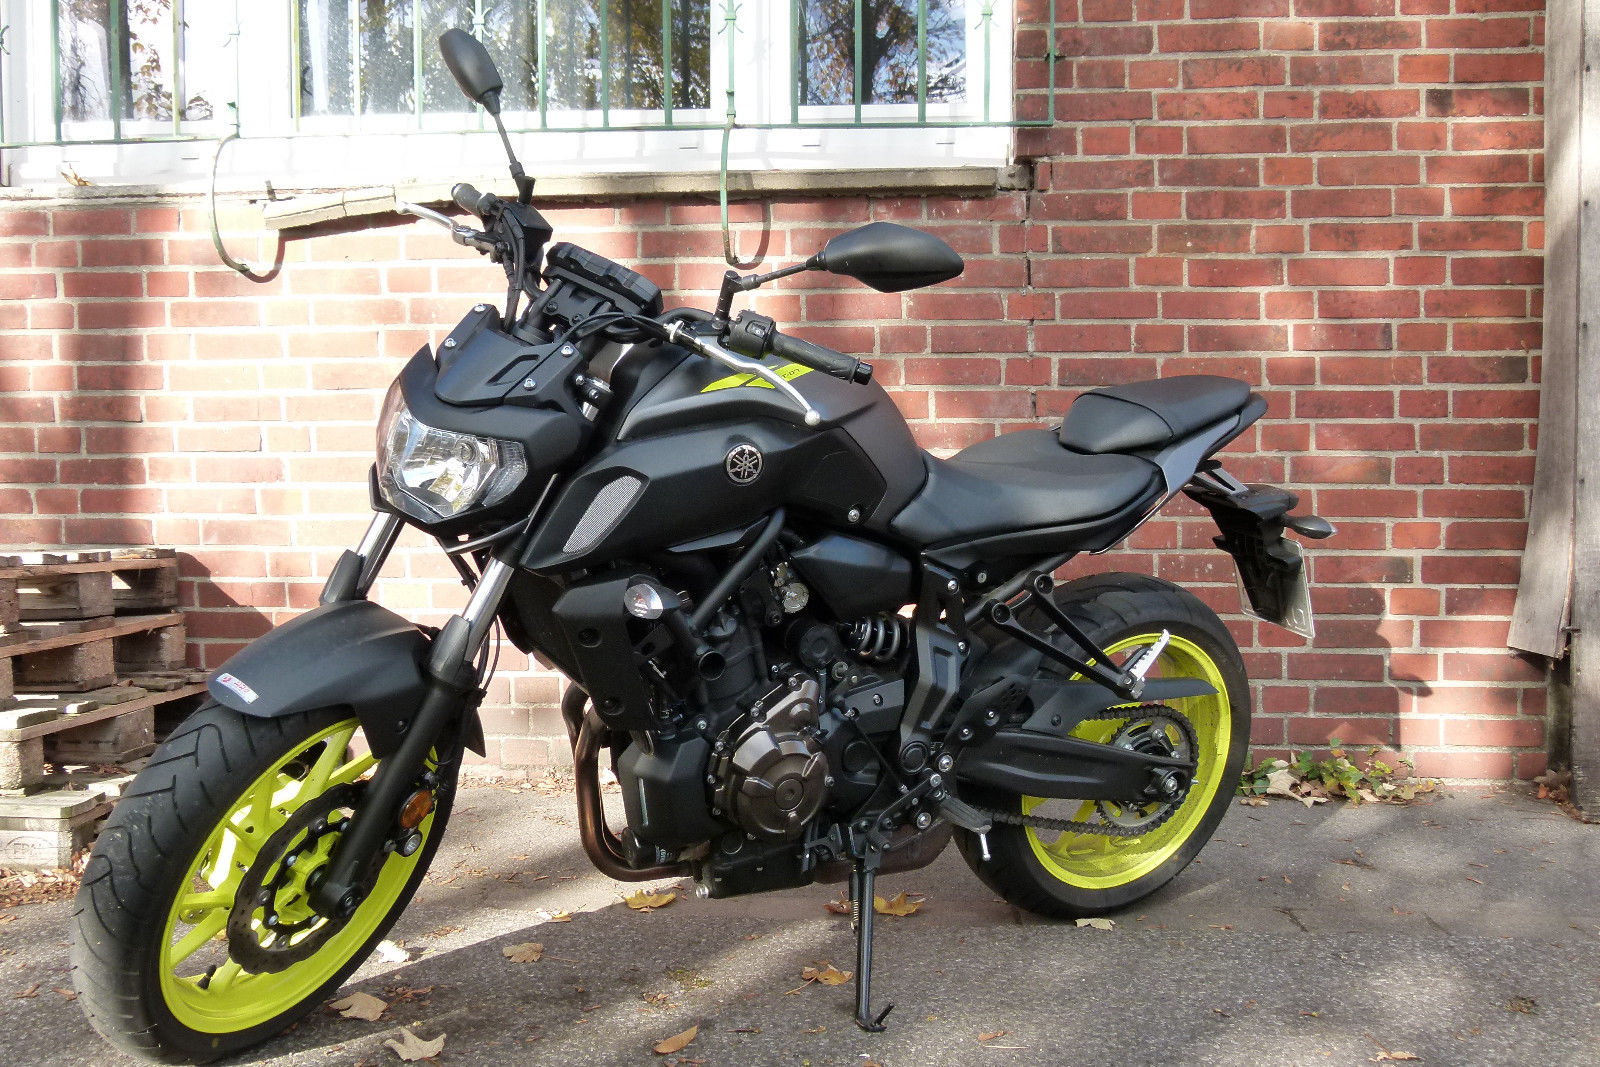 MT-125 ABS Modell 2018 SOFORT LIEFERBAR!